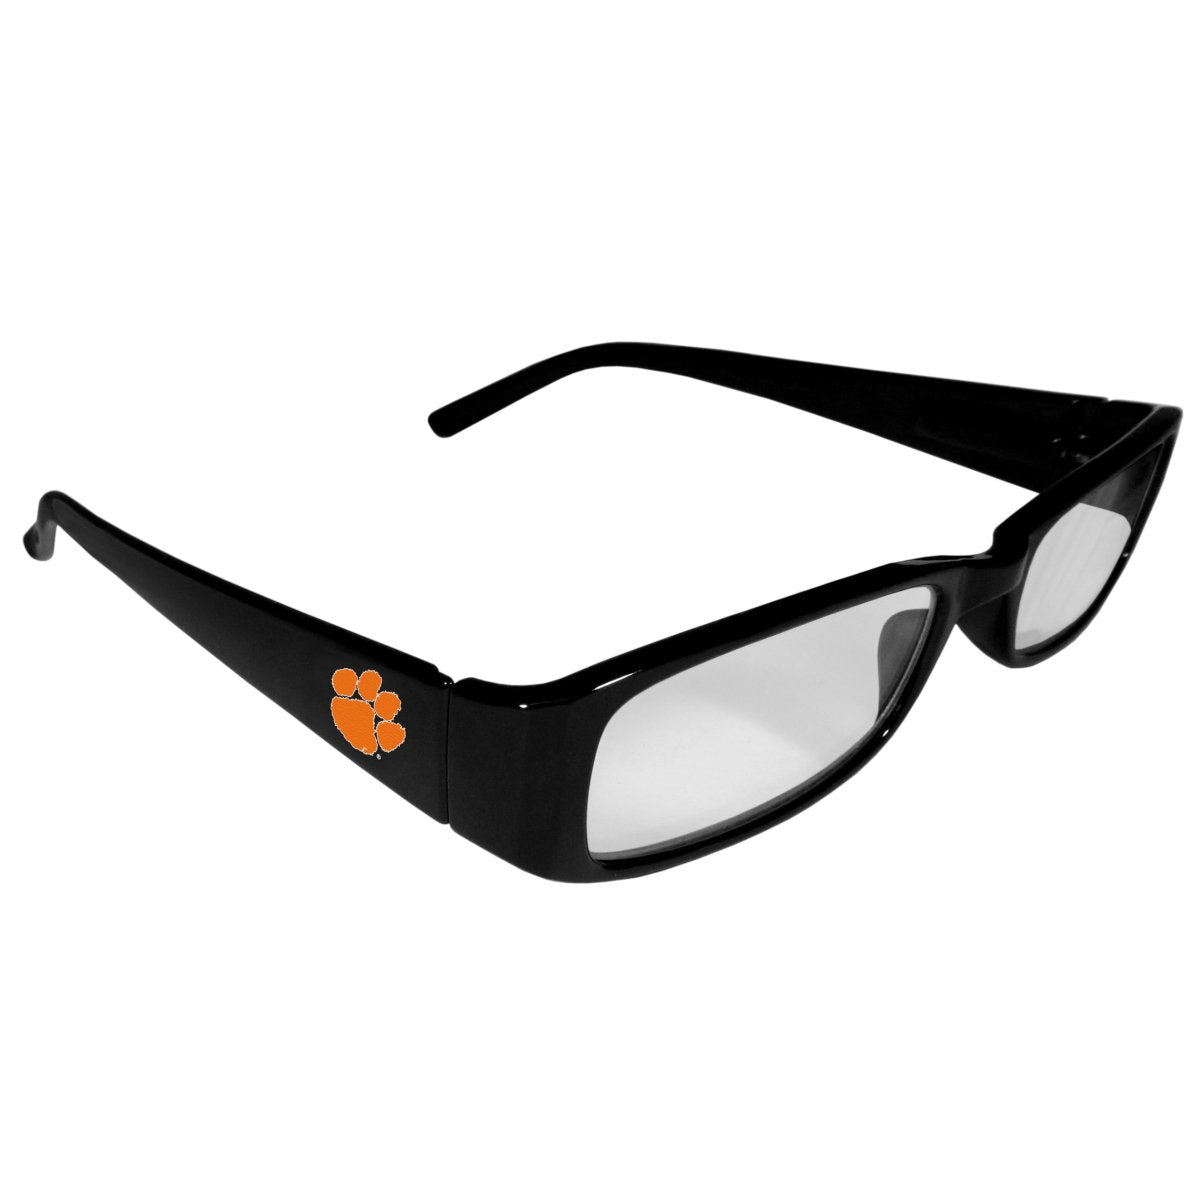 Siskiyou Clemson Tigers Printed Reading Glasses - Mr. Knickerbocker